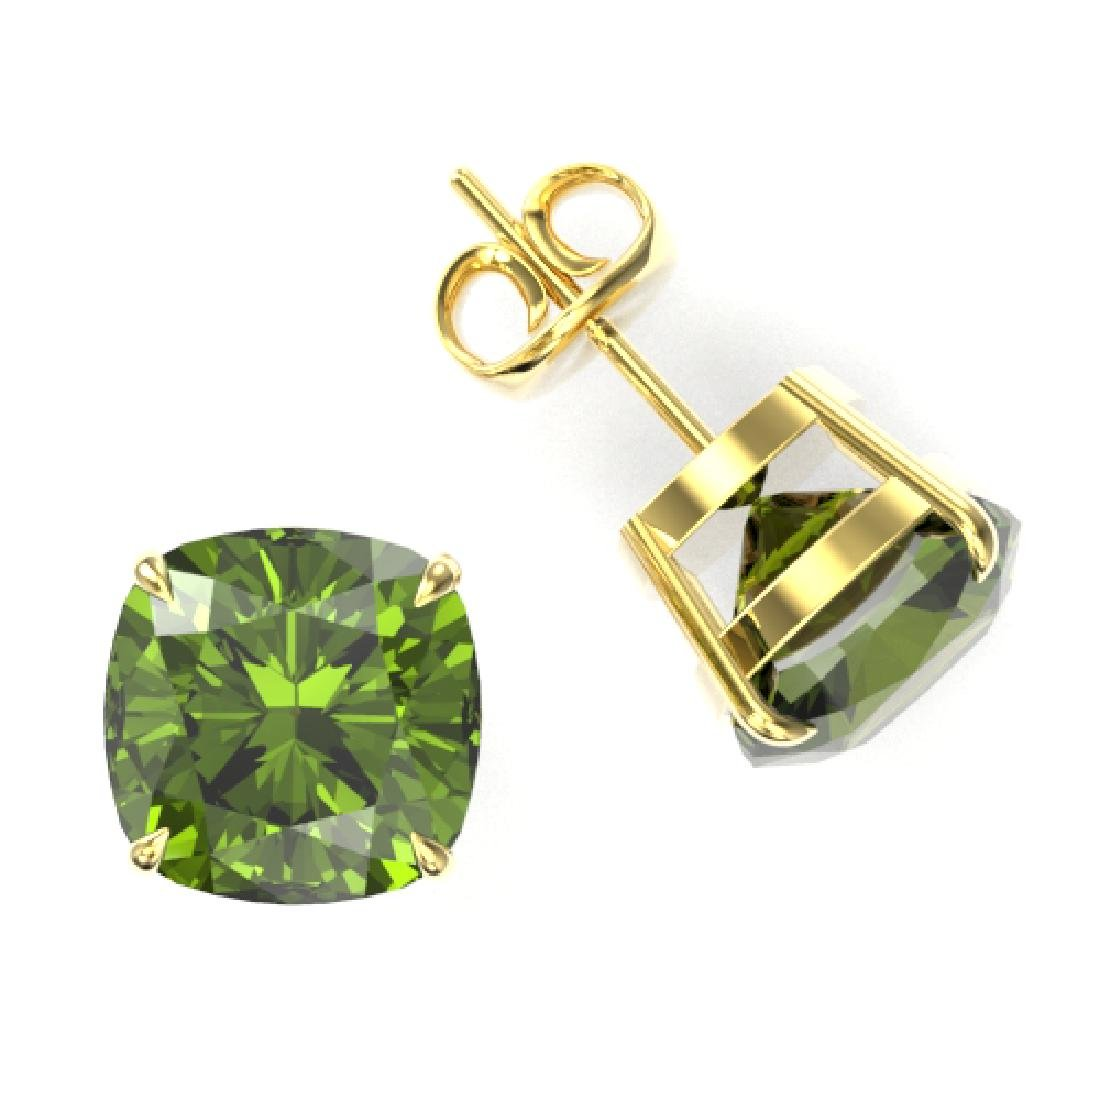 12 CTW Cushion Cut Green Tourmaline Designer Stud - 2